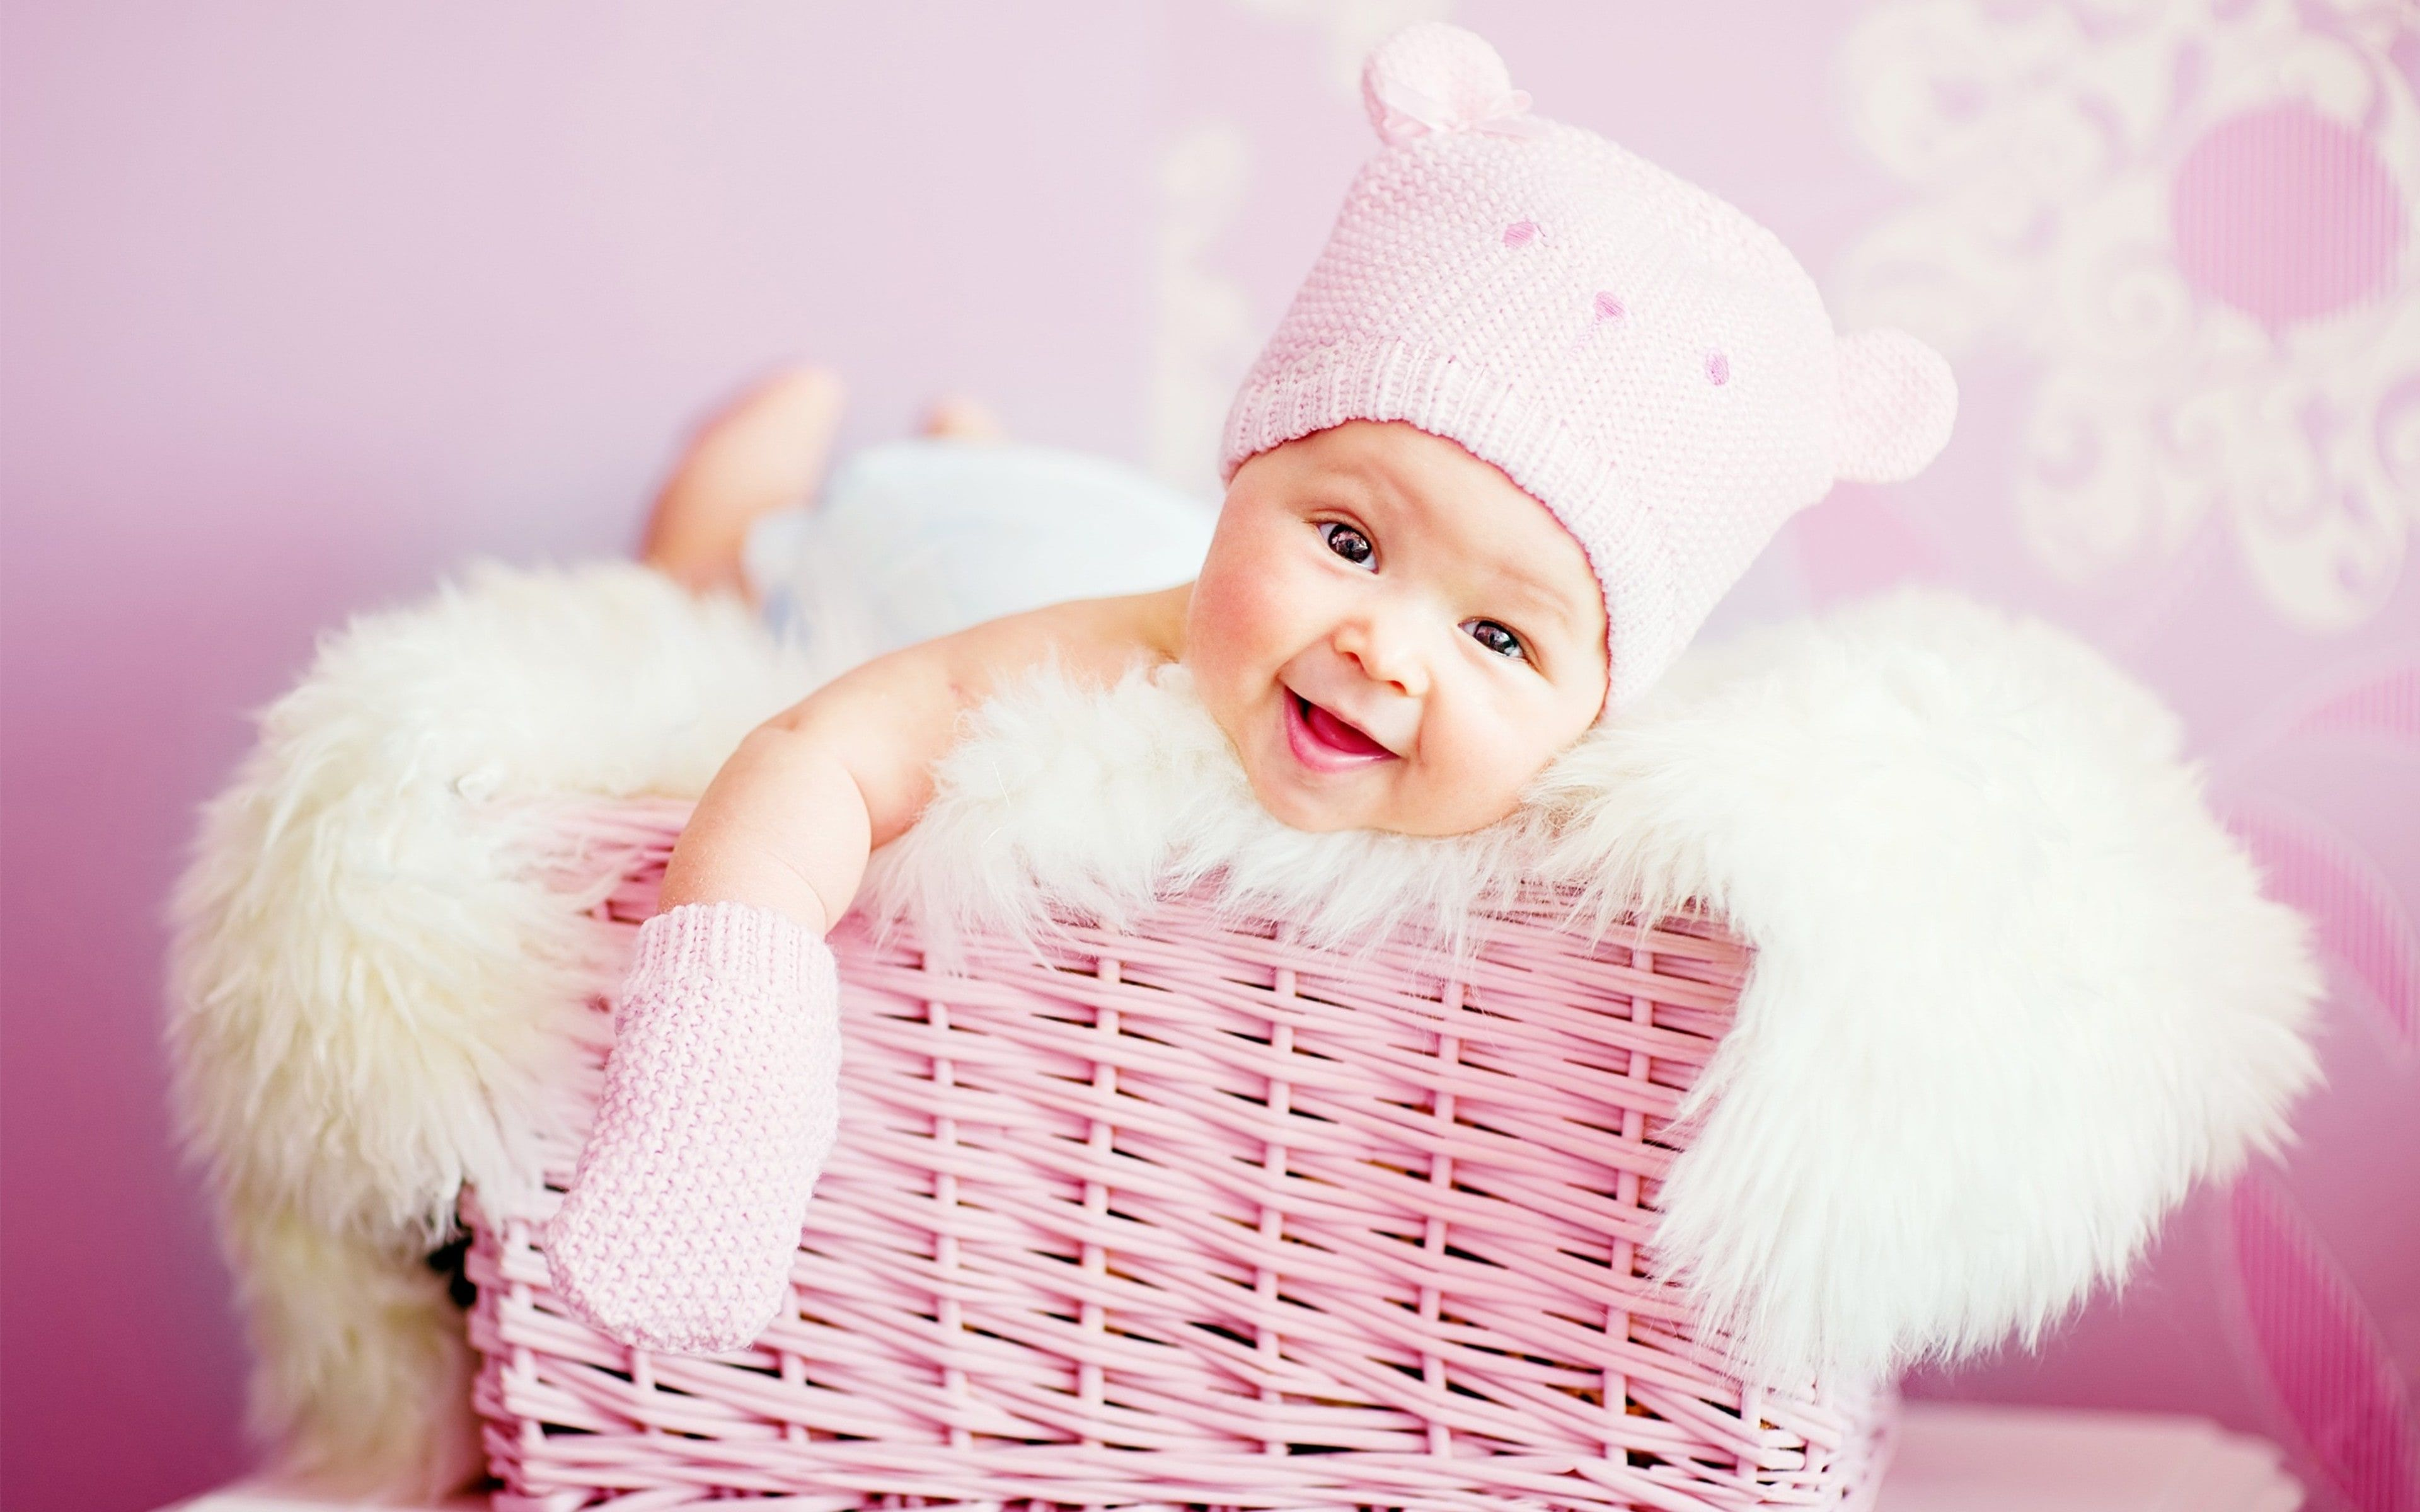 baby laughing cute | free background images